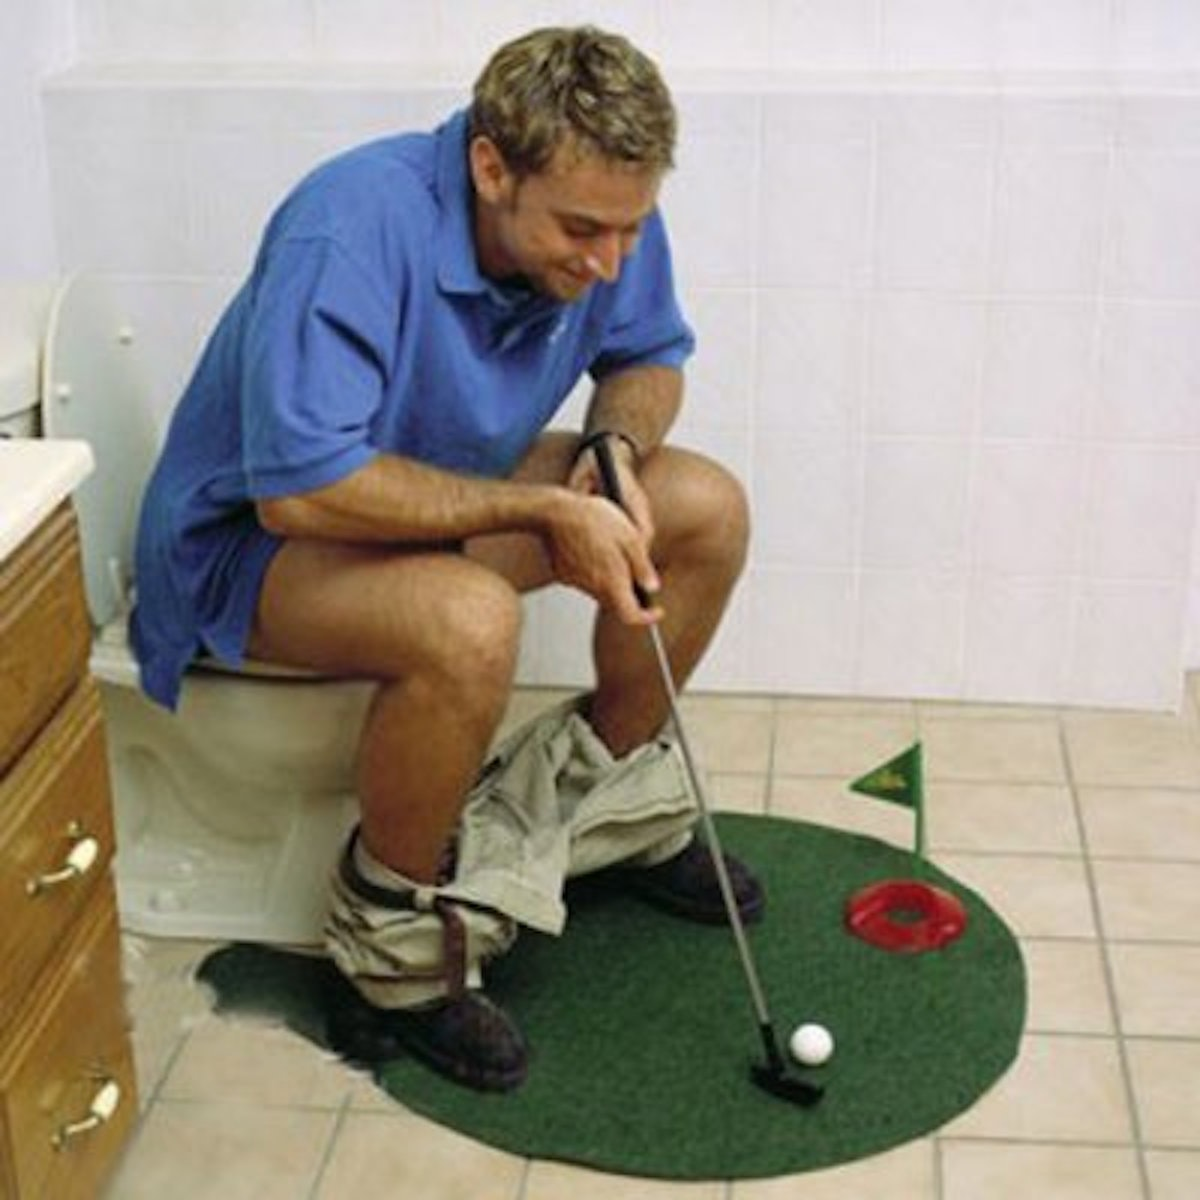 A practice putter for the potty